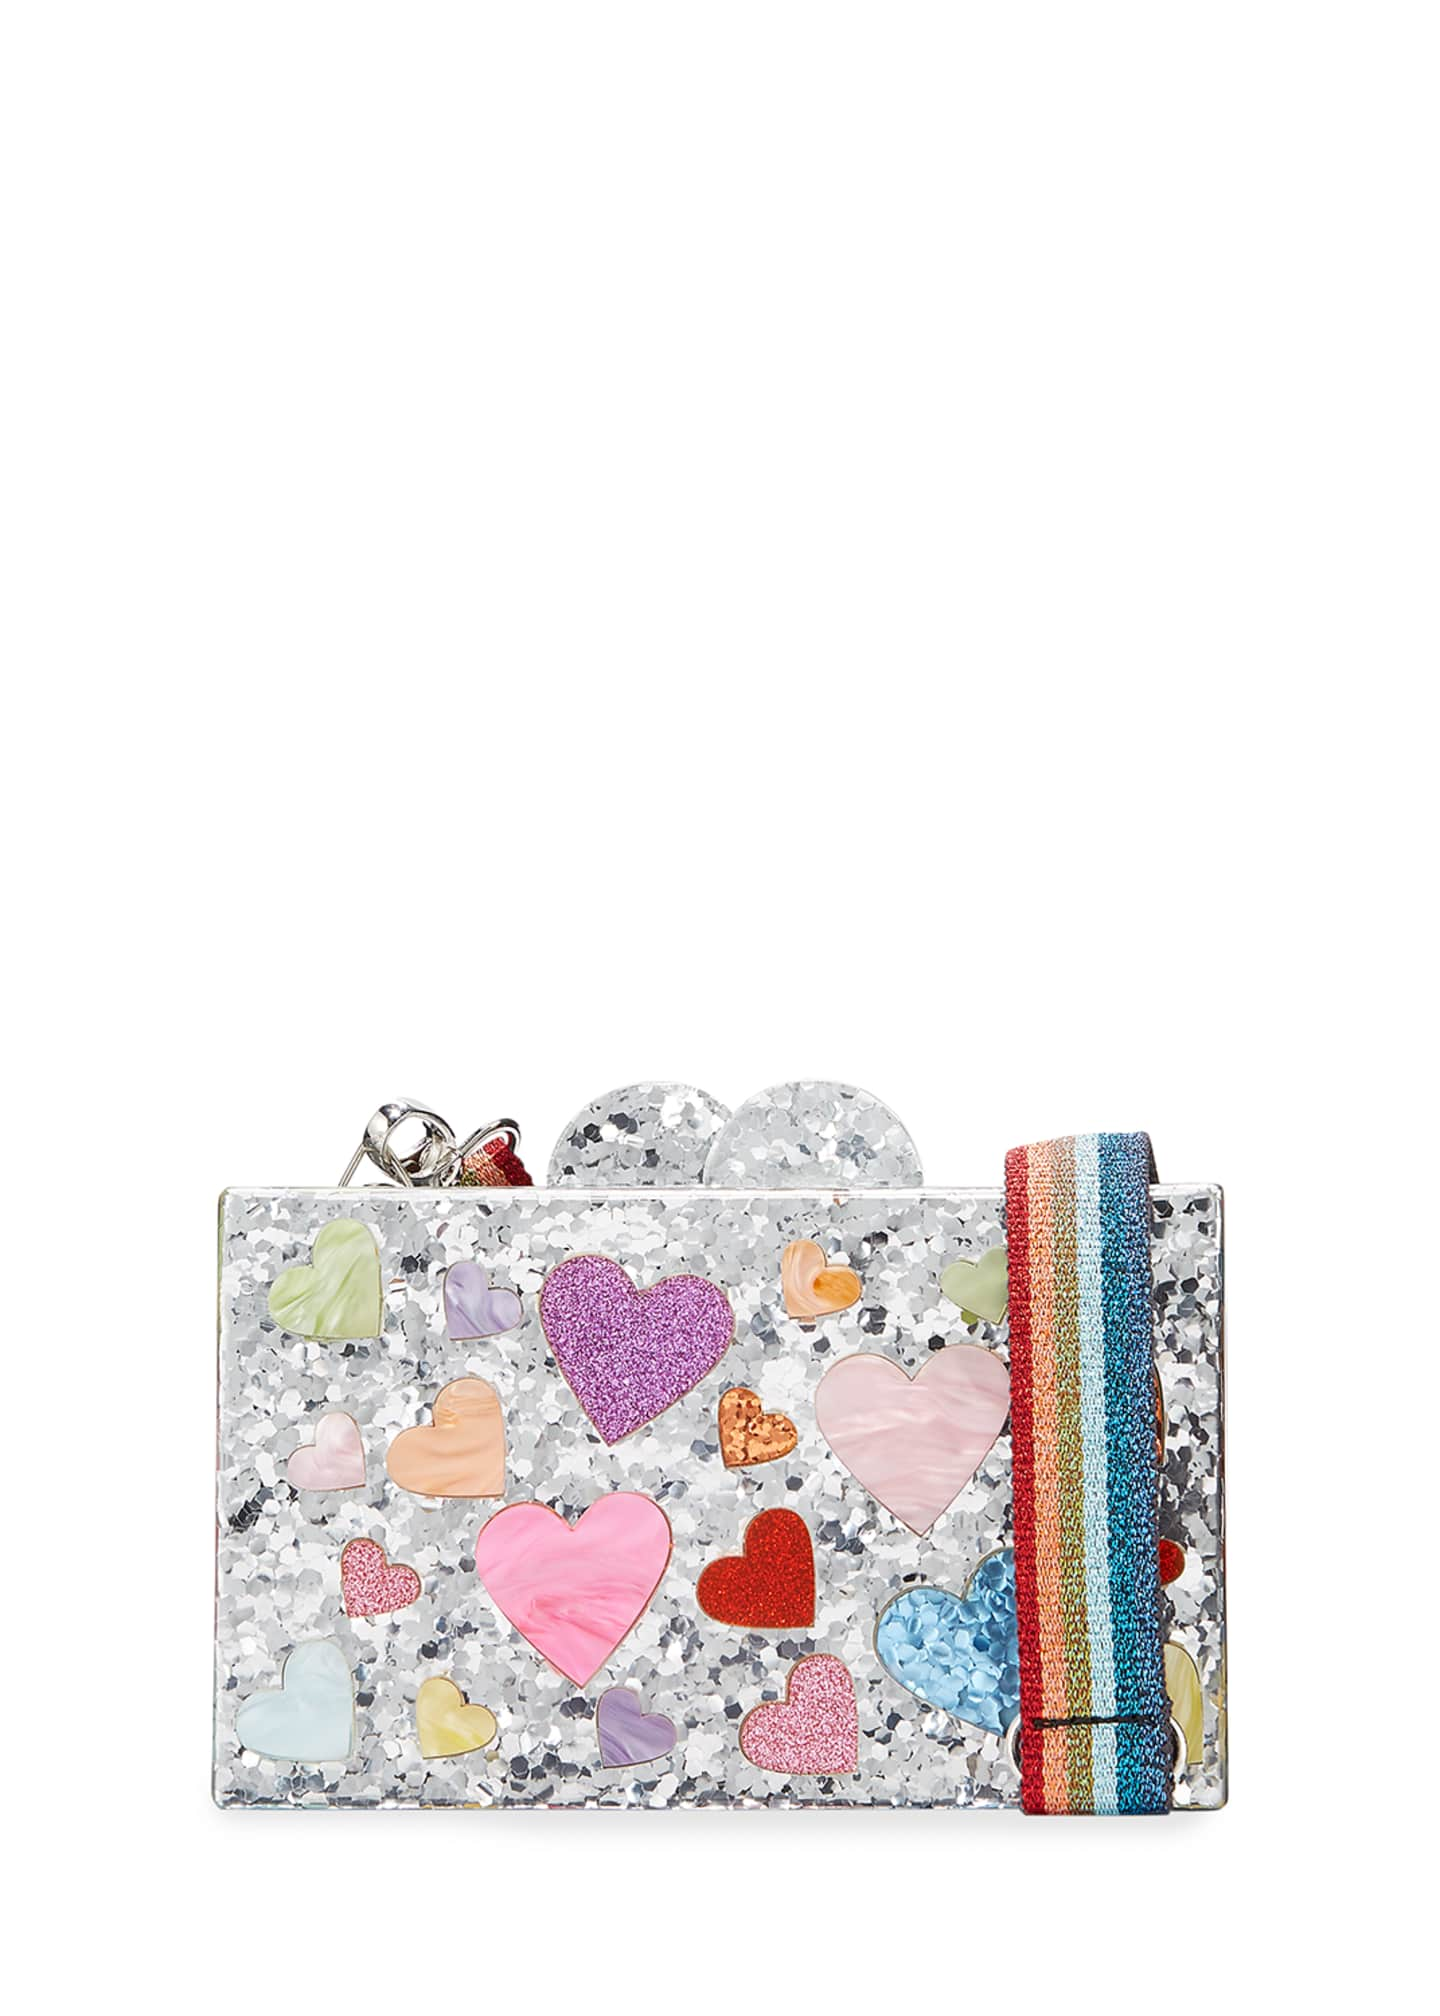 Bari Lynn Girl's Scattered Rainbow Hearts Acrylic Clutch